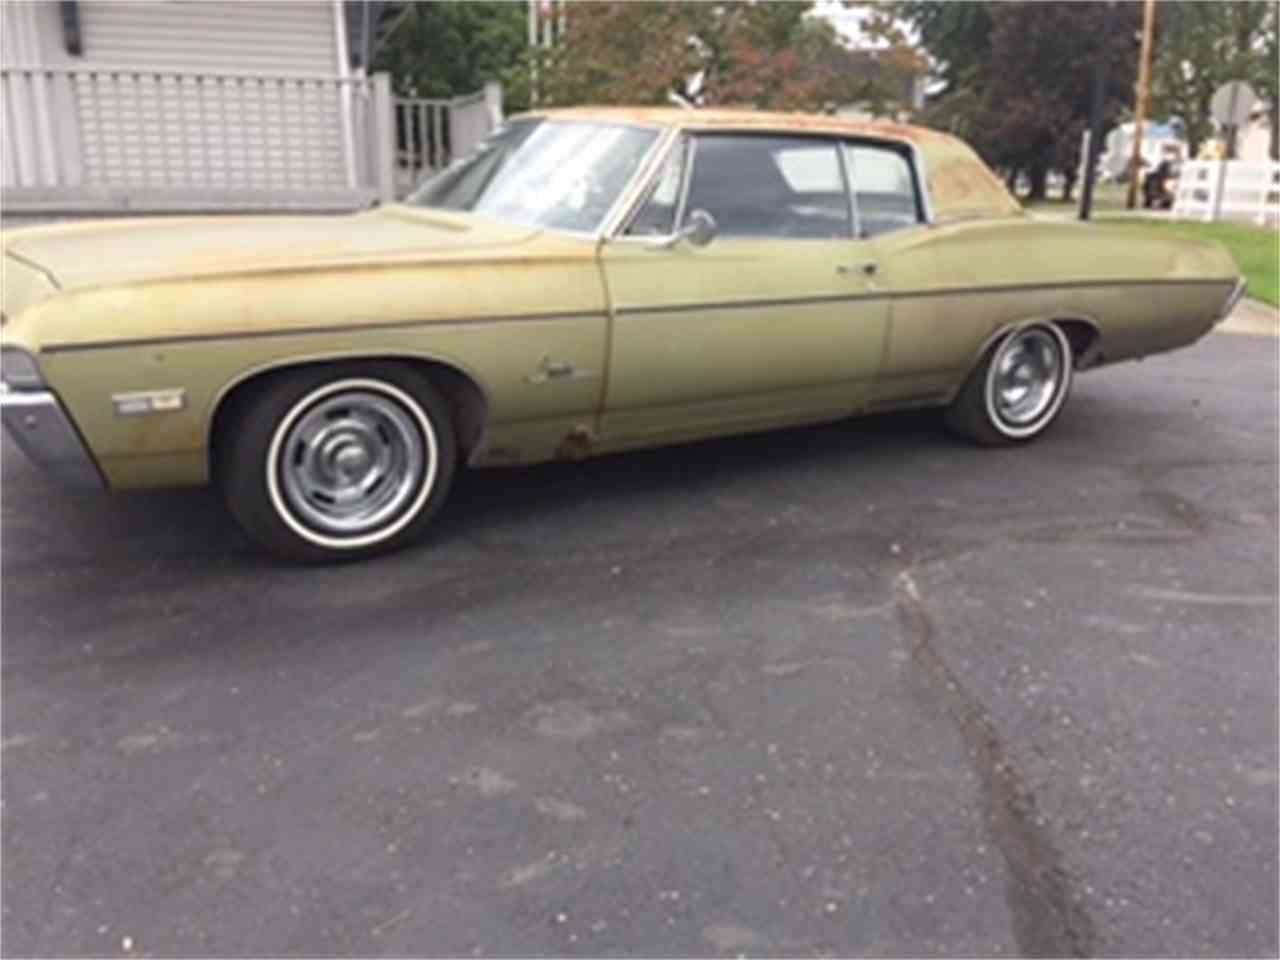 1968 Chevrolet Impala for Sale on ClassicCars.com